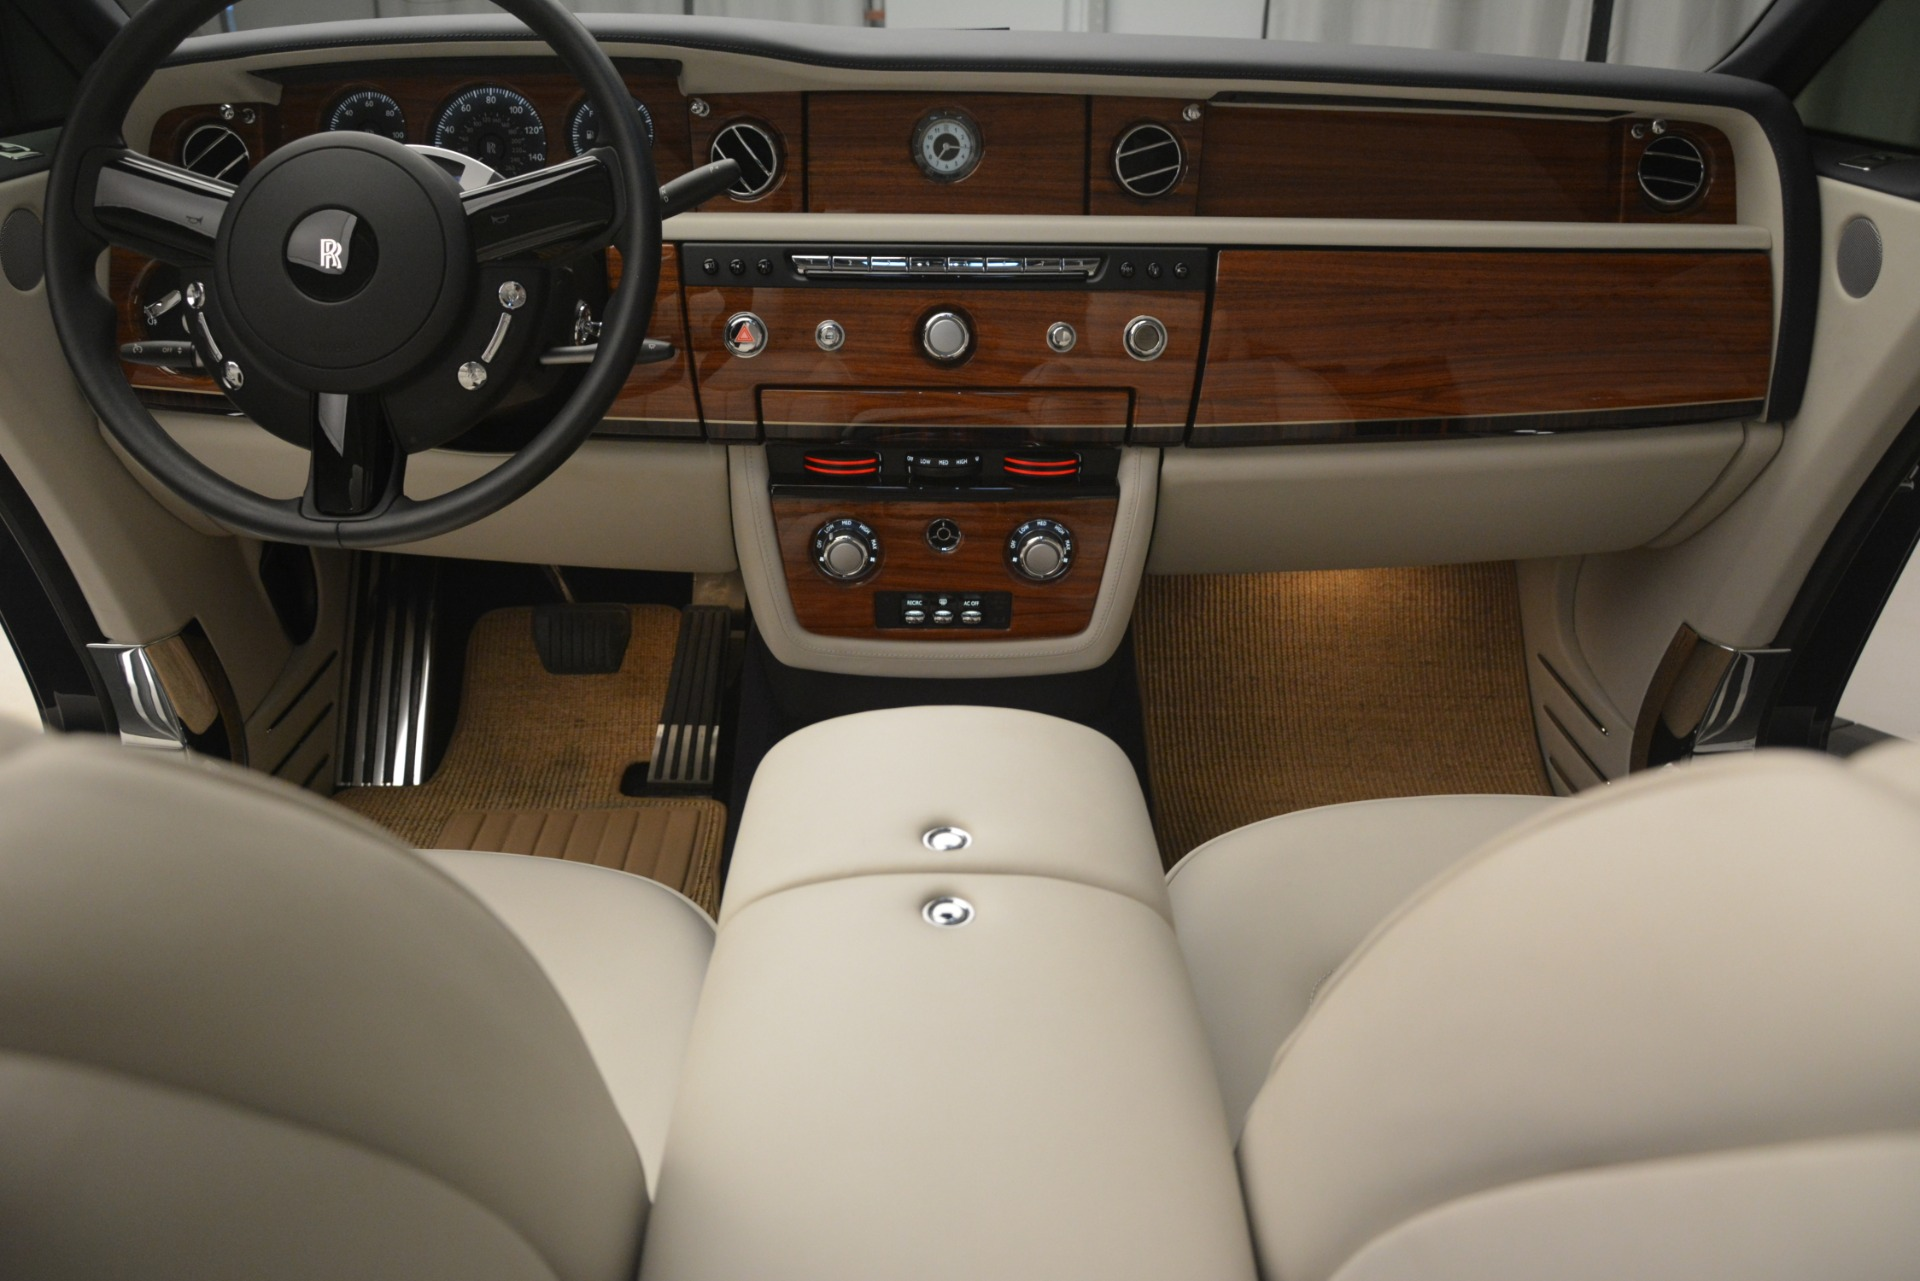 Used 2013 Rolls-Royce Phantom Drophead Coupe  For Sale In Greenwich, CT 2999_p34